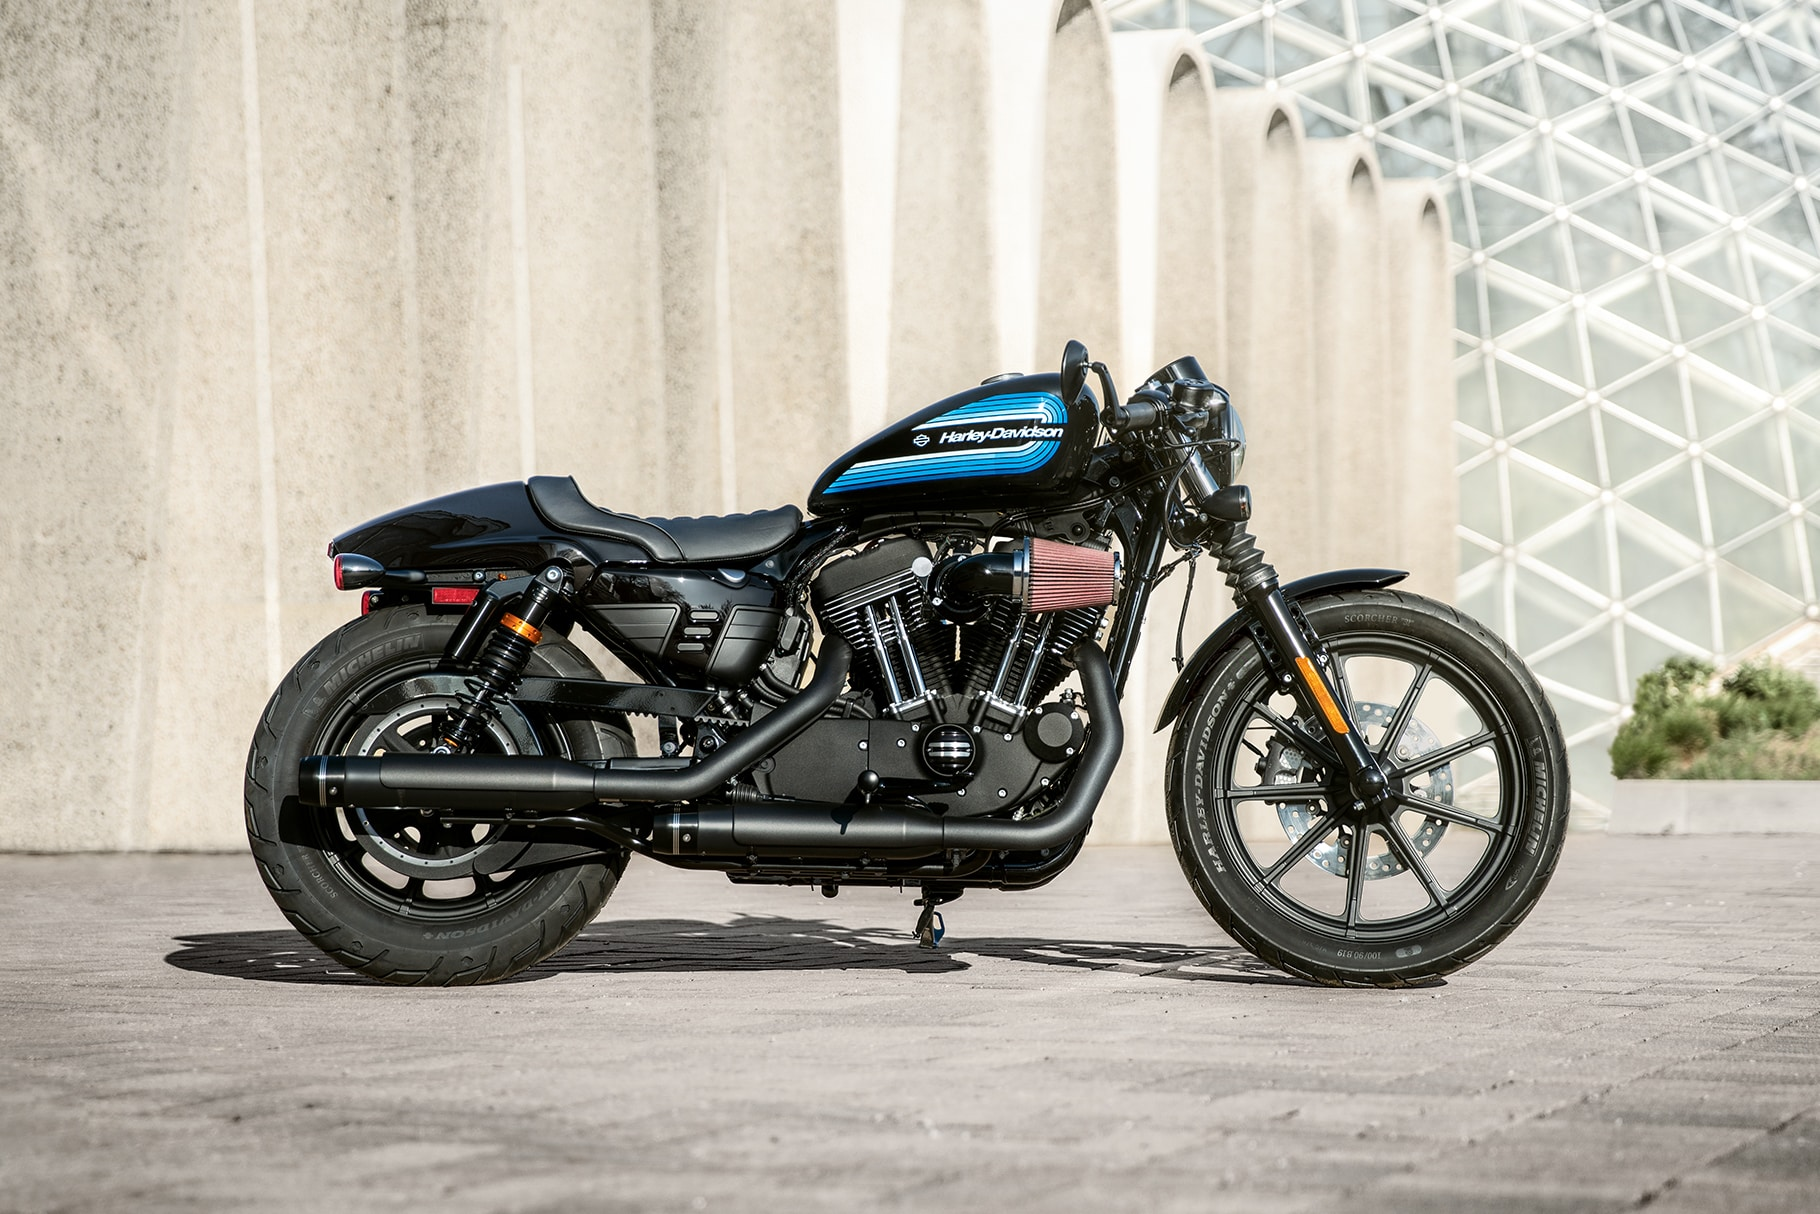 2019 harley davidson sportster iron 1200 motorcycle uae 39 s prices specs features review. Black Bedroom Furniture Sets. Home Design Ideas